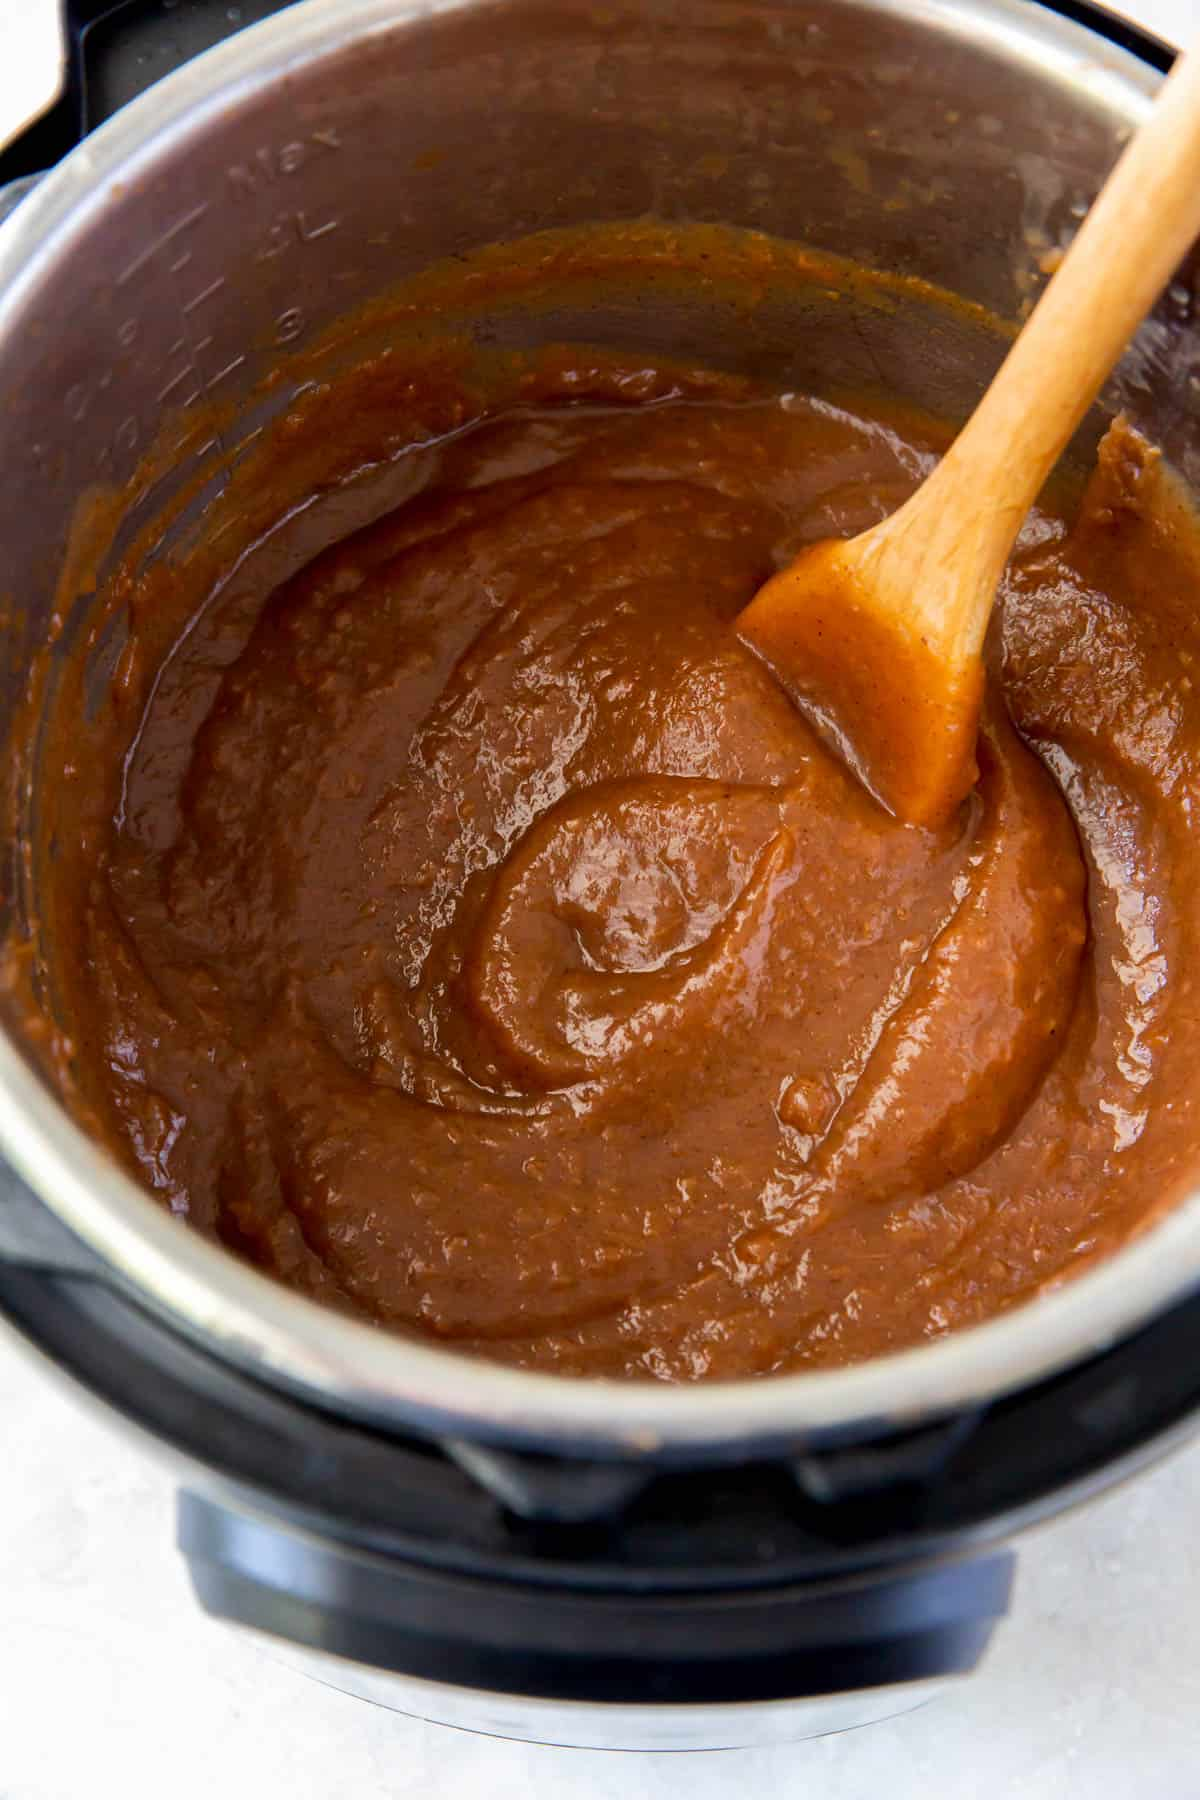 apple butter cooked in the instant pot